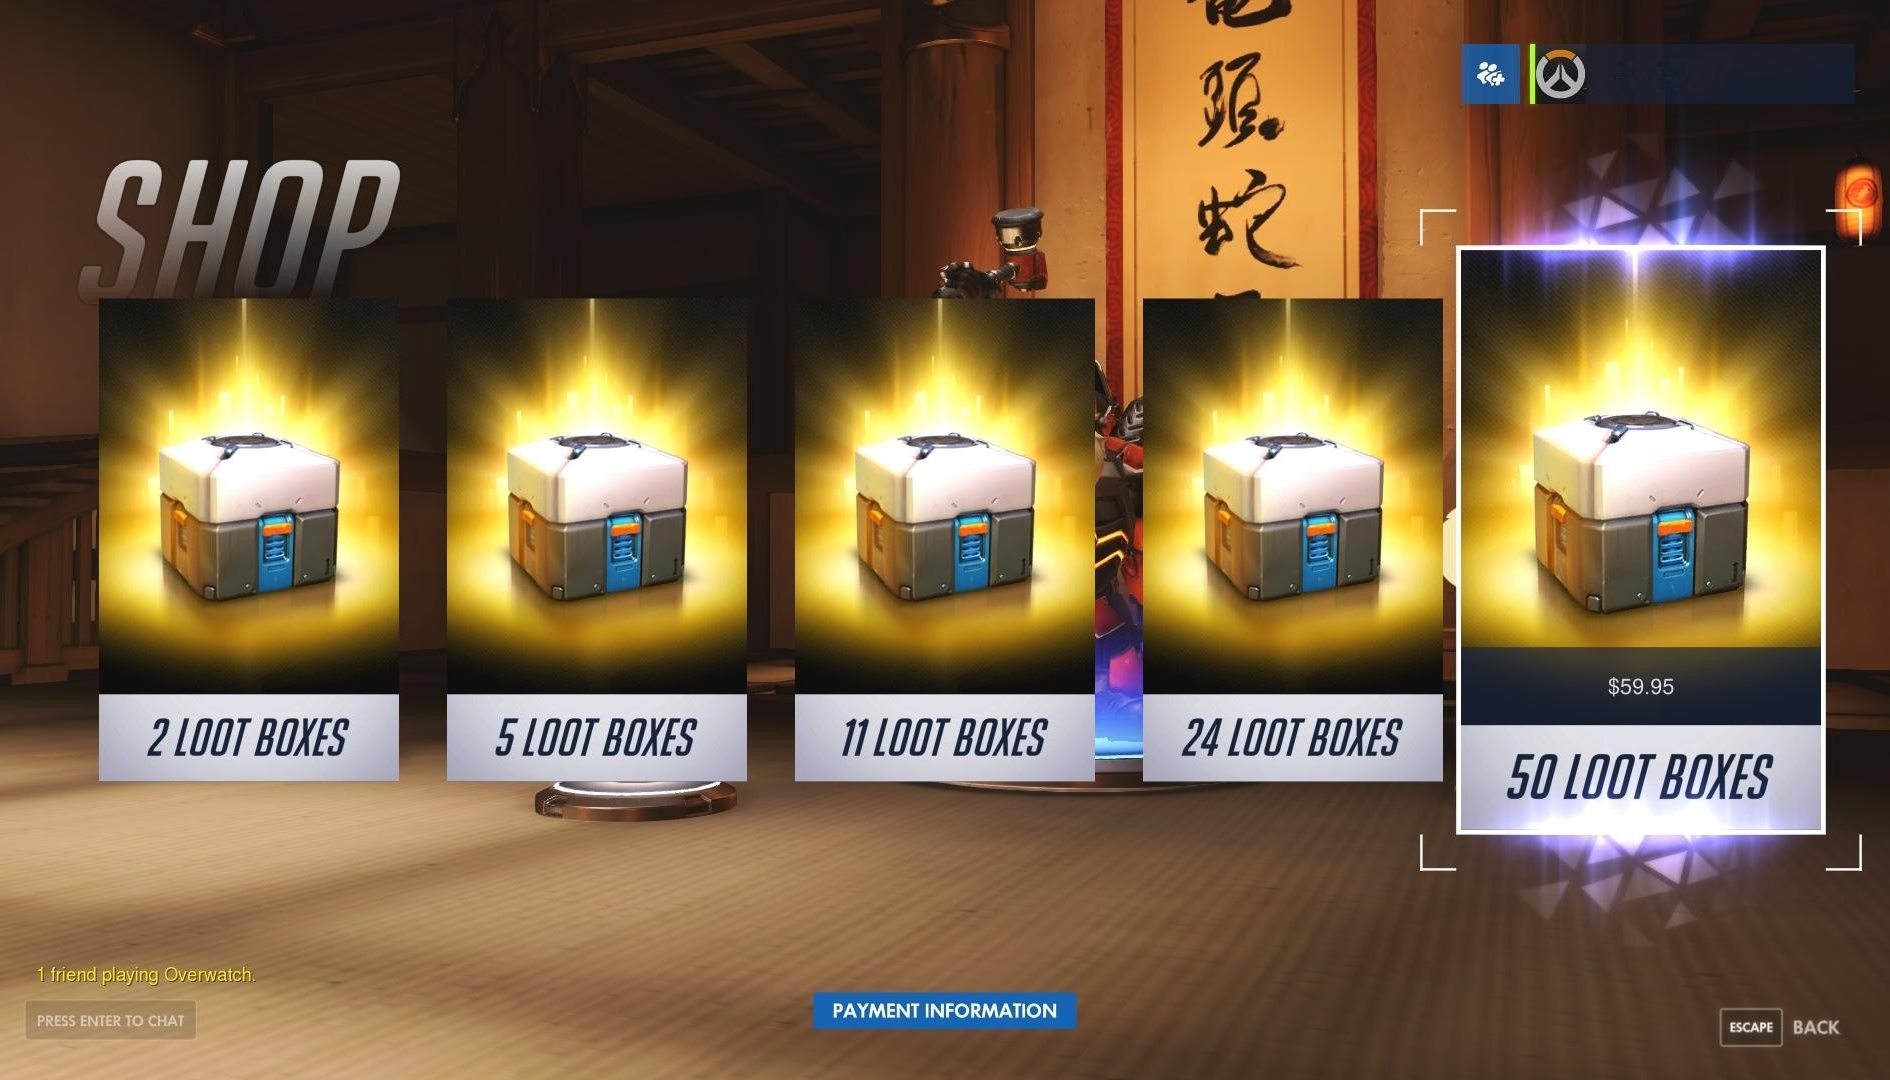 Loot Box, la germania le vieta ai minori